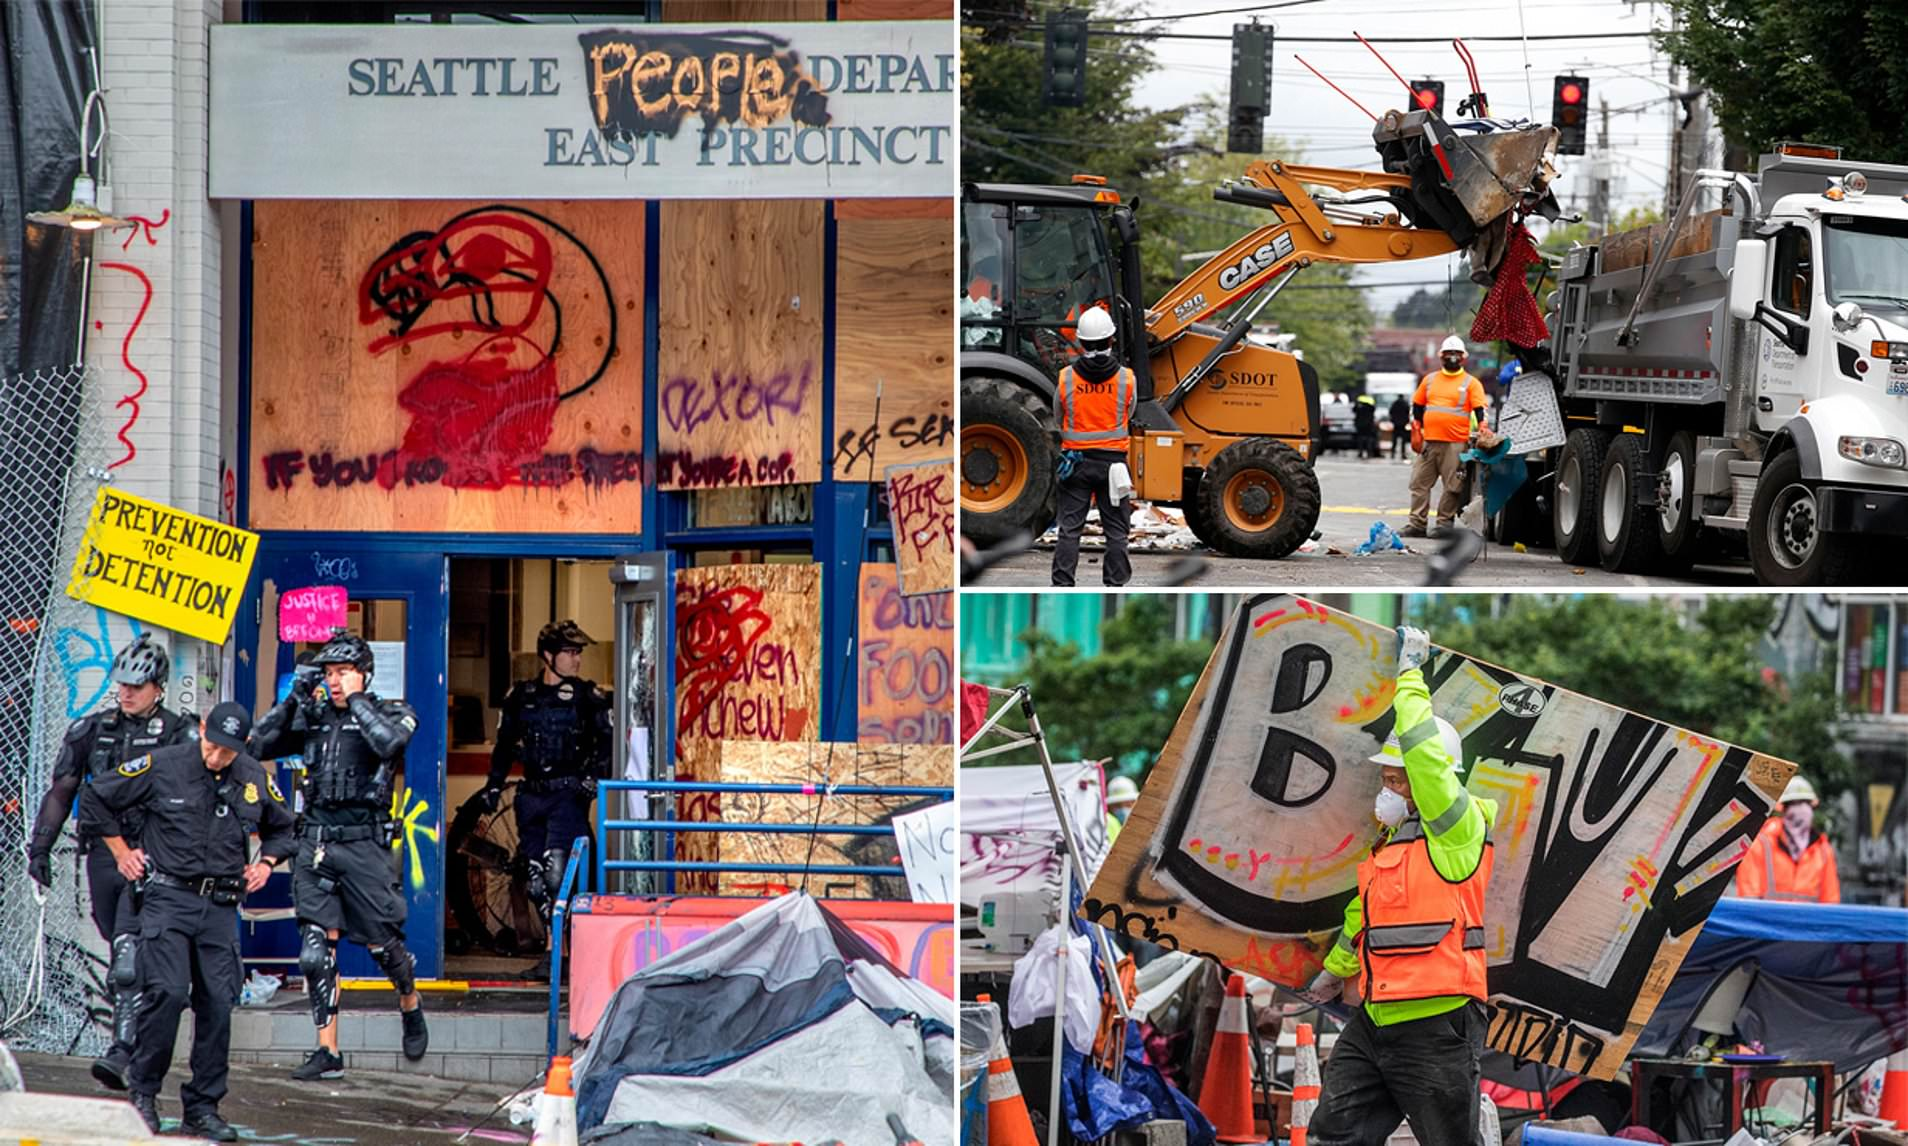 Bulldozers Crush Camp At Chop Seattle S Cop Free Zone Daily